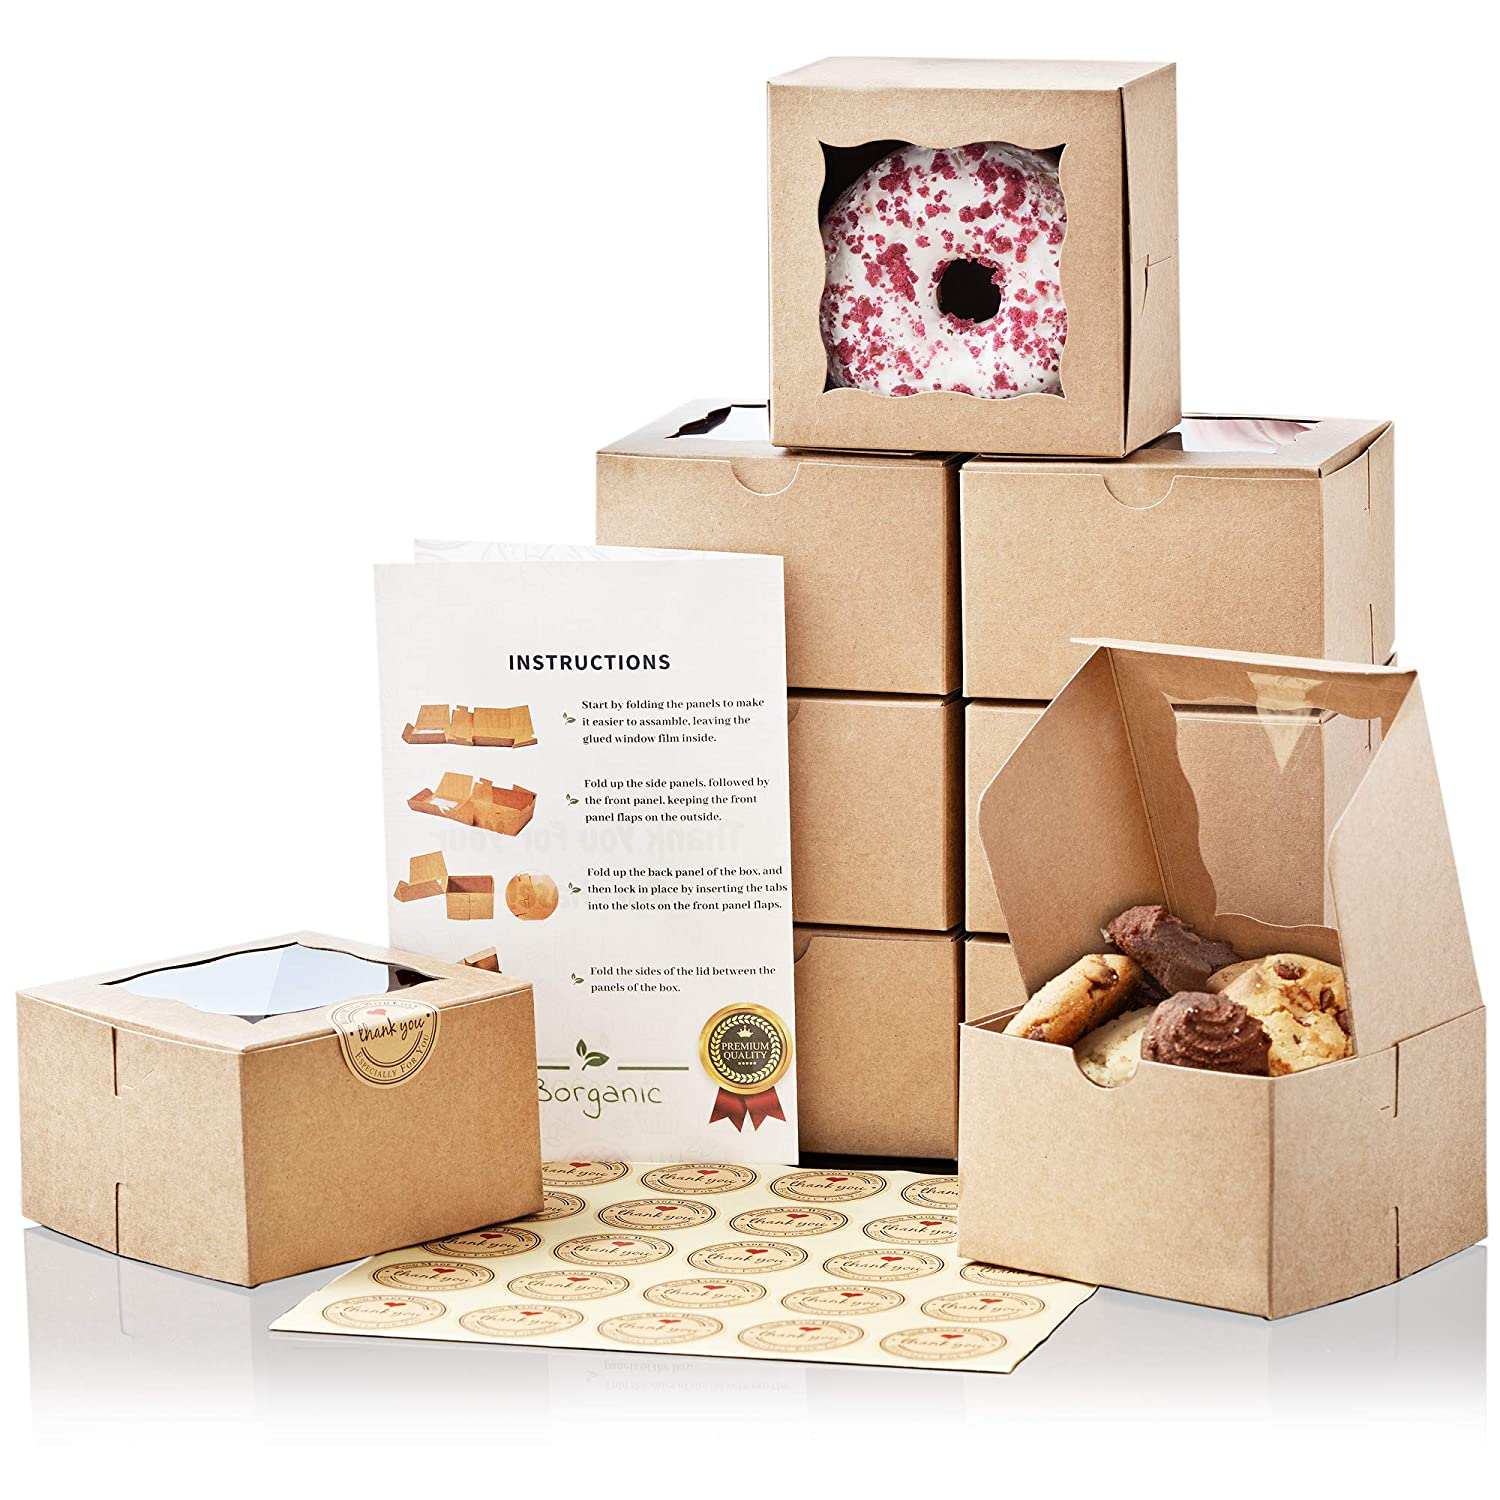 Premium Brown Bakery Boxes [50 Pack] - Extra Thick | Oil Resistant Cookie Boxes with Window | 4x4x2.5 Inches | for Pastry, Donut, Mini Cake, Macaron & Dessert!